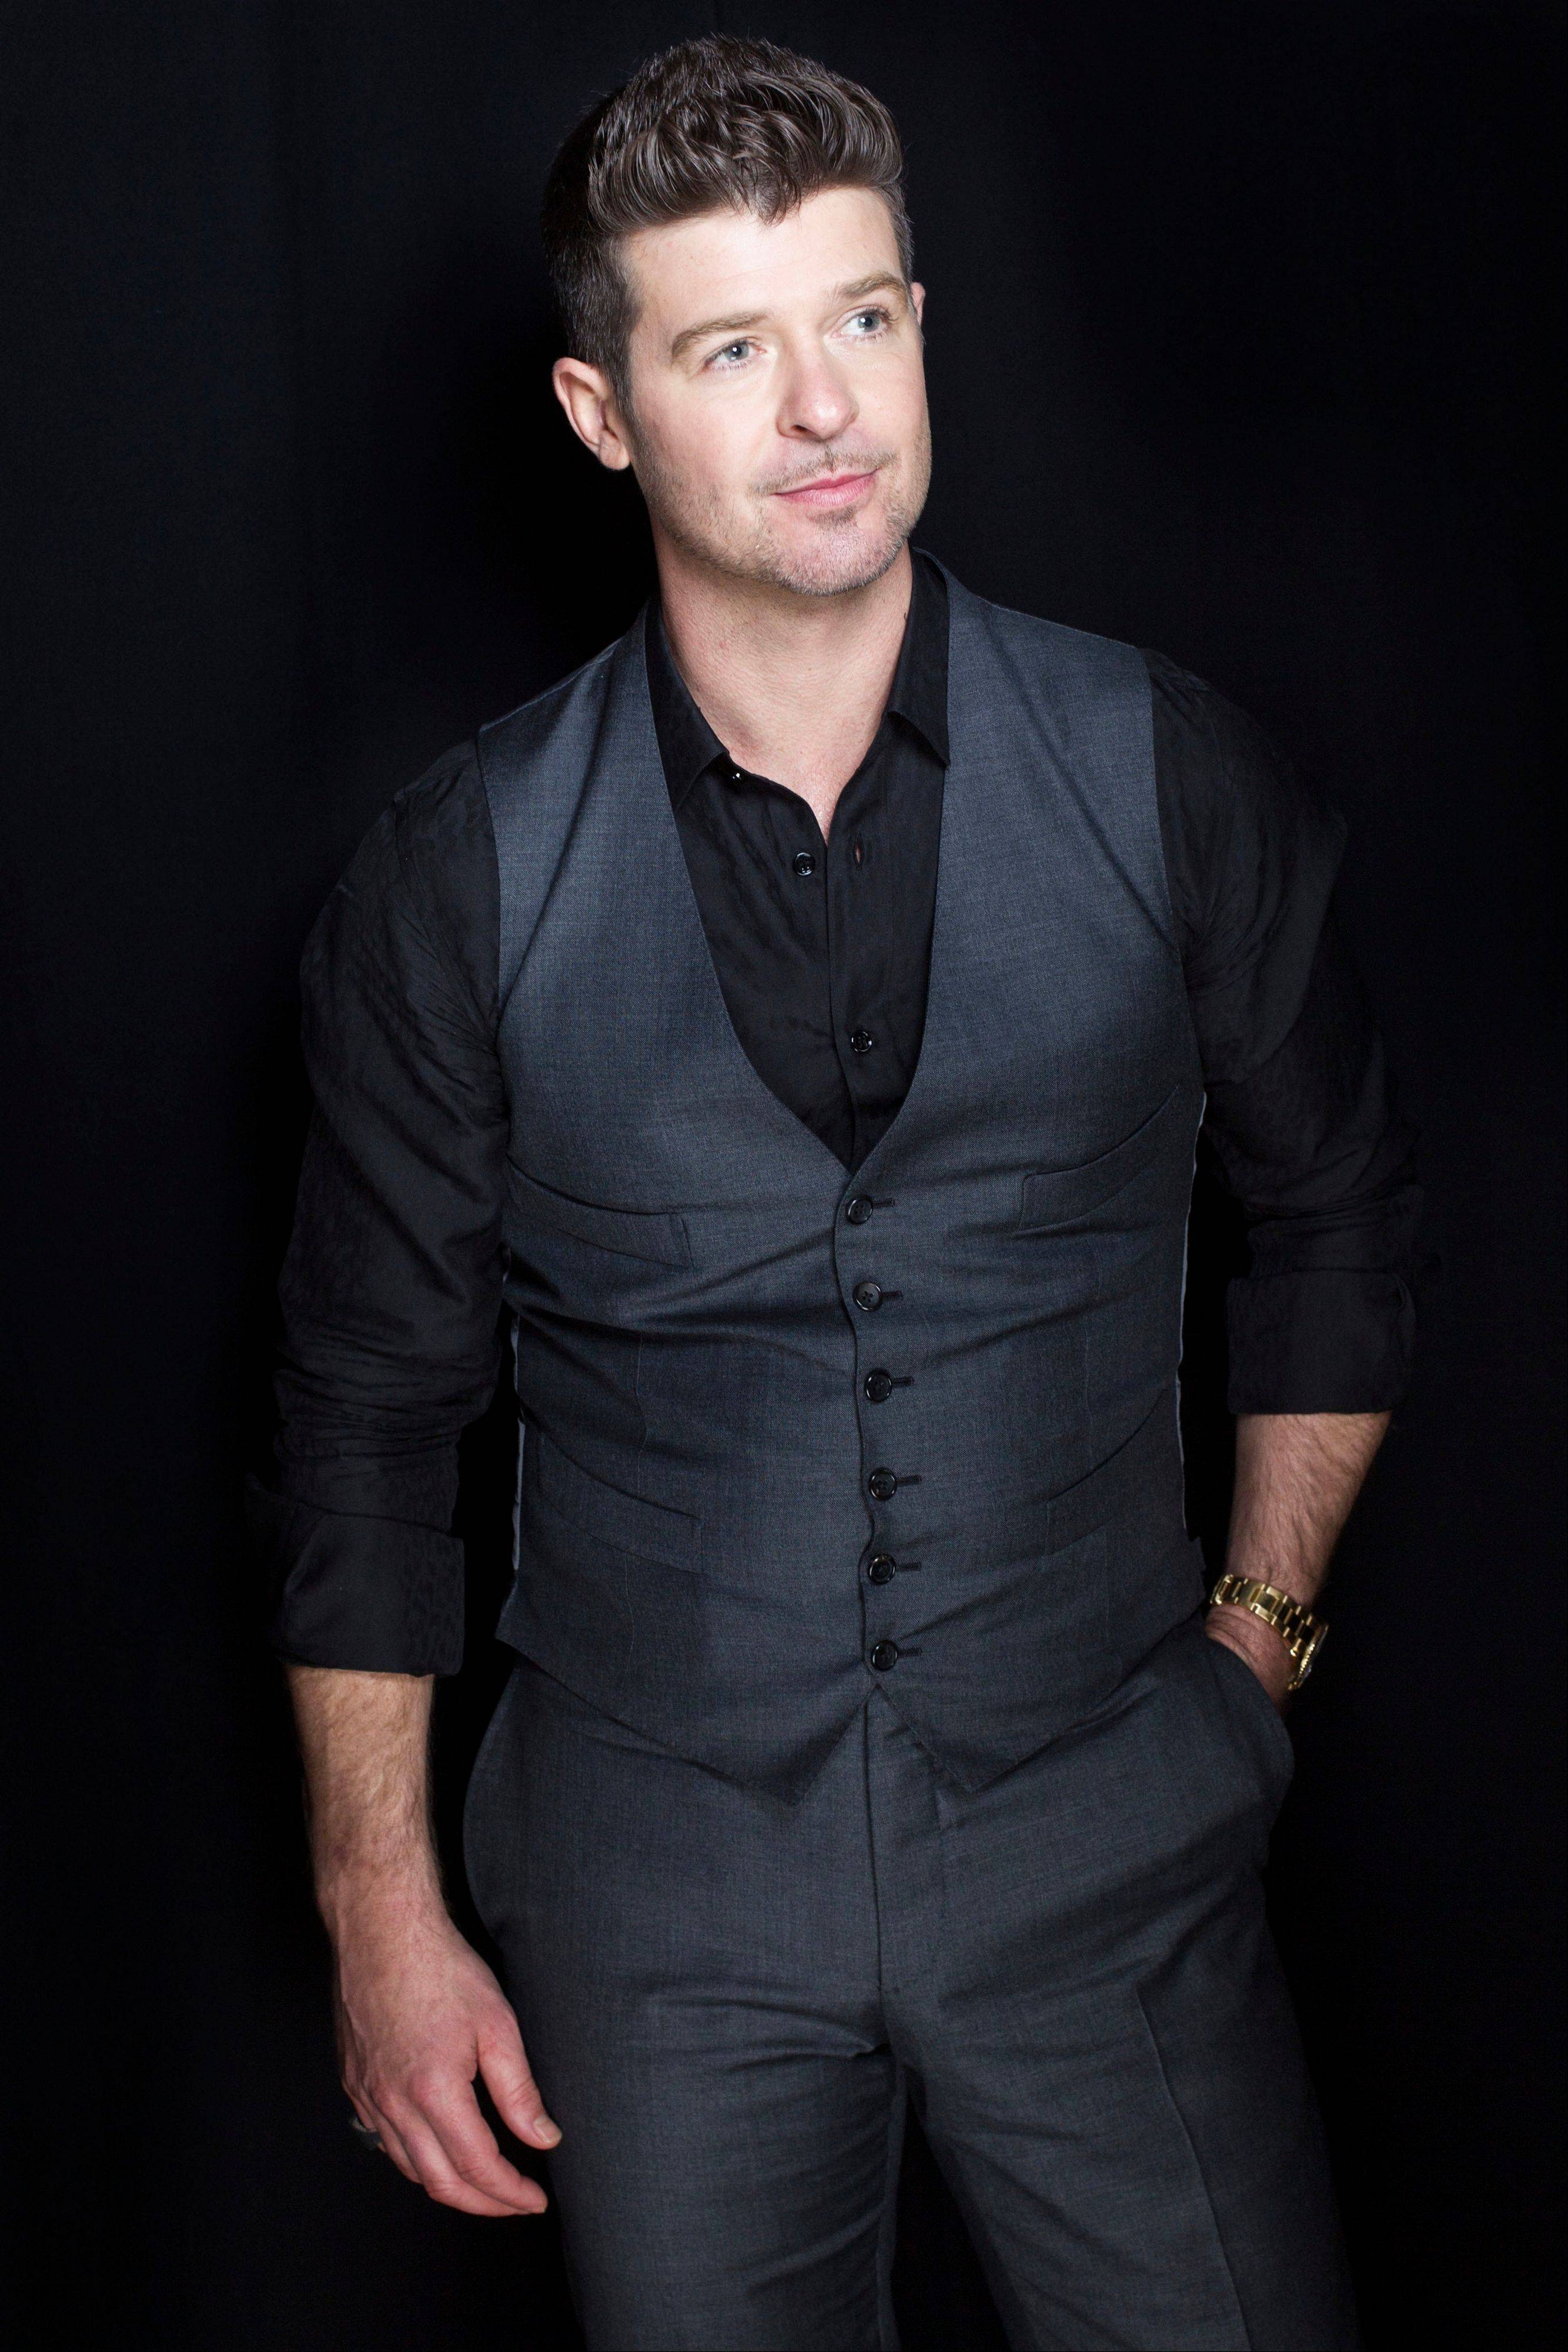 Robin Thicke will perform with Chicago at this year's Grammy Awards.